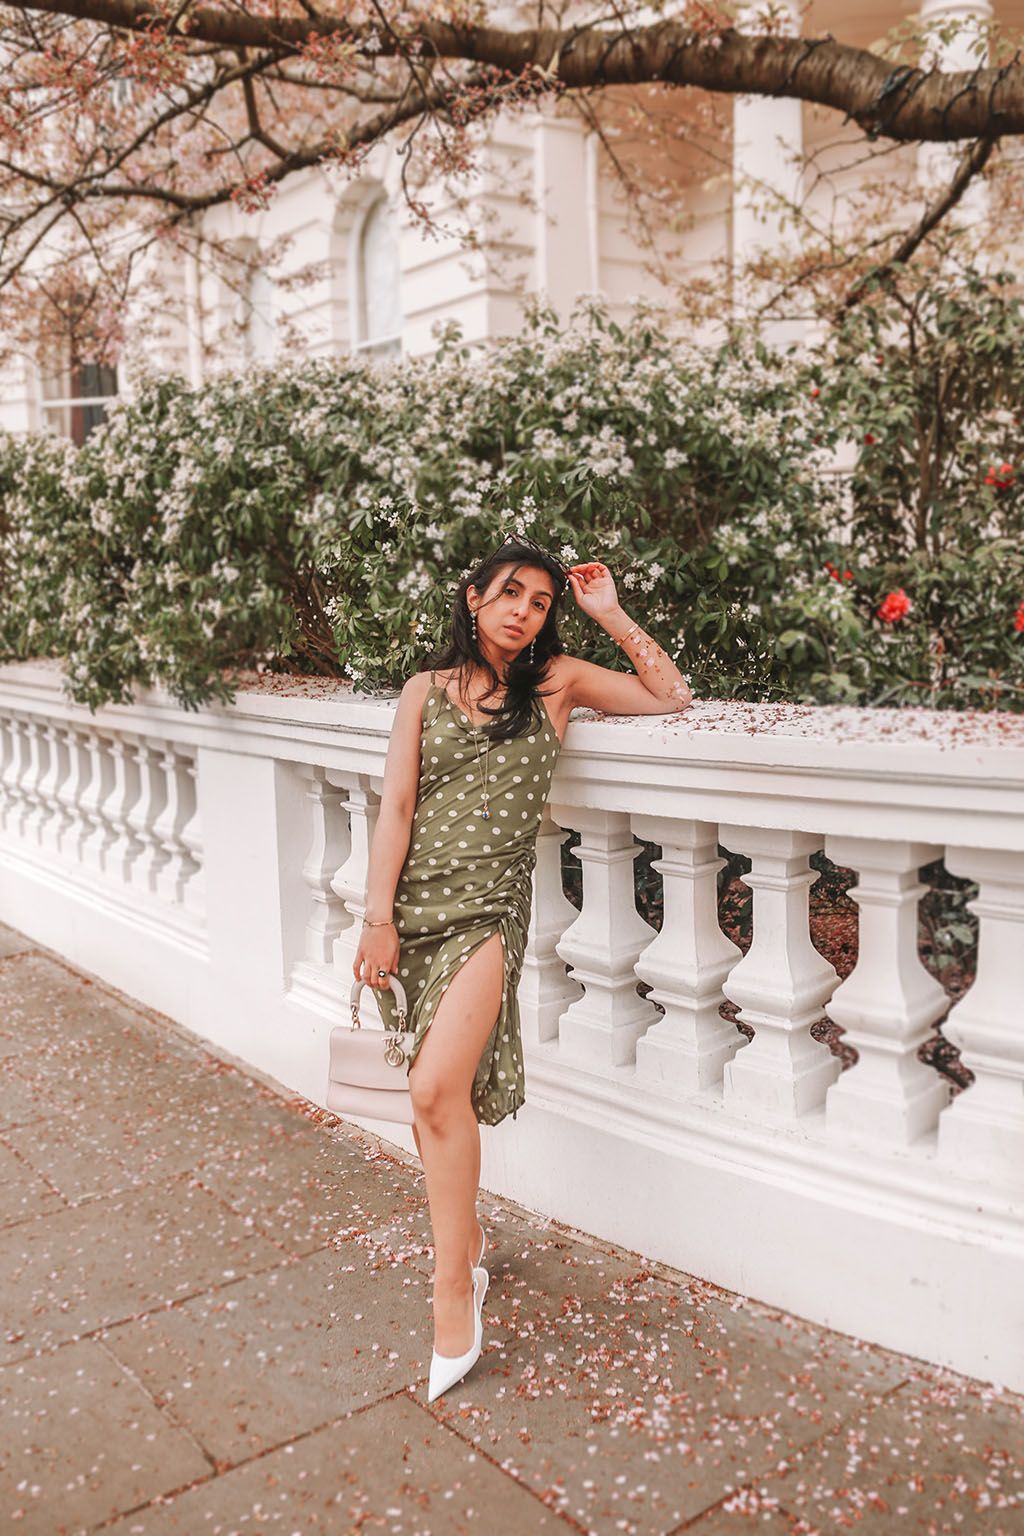 682a64b5acab2f Luxury fashion blogger Shloka Narang of The Silk Sneaker shares her tips on  how to always